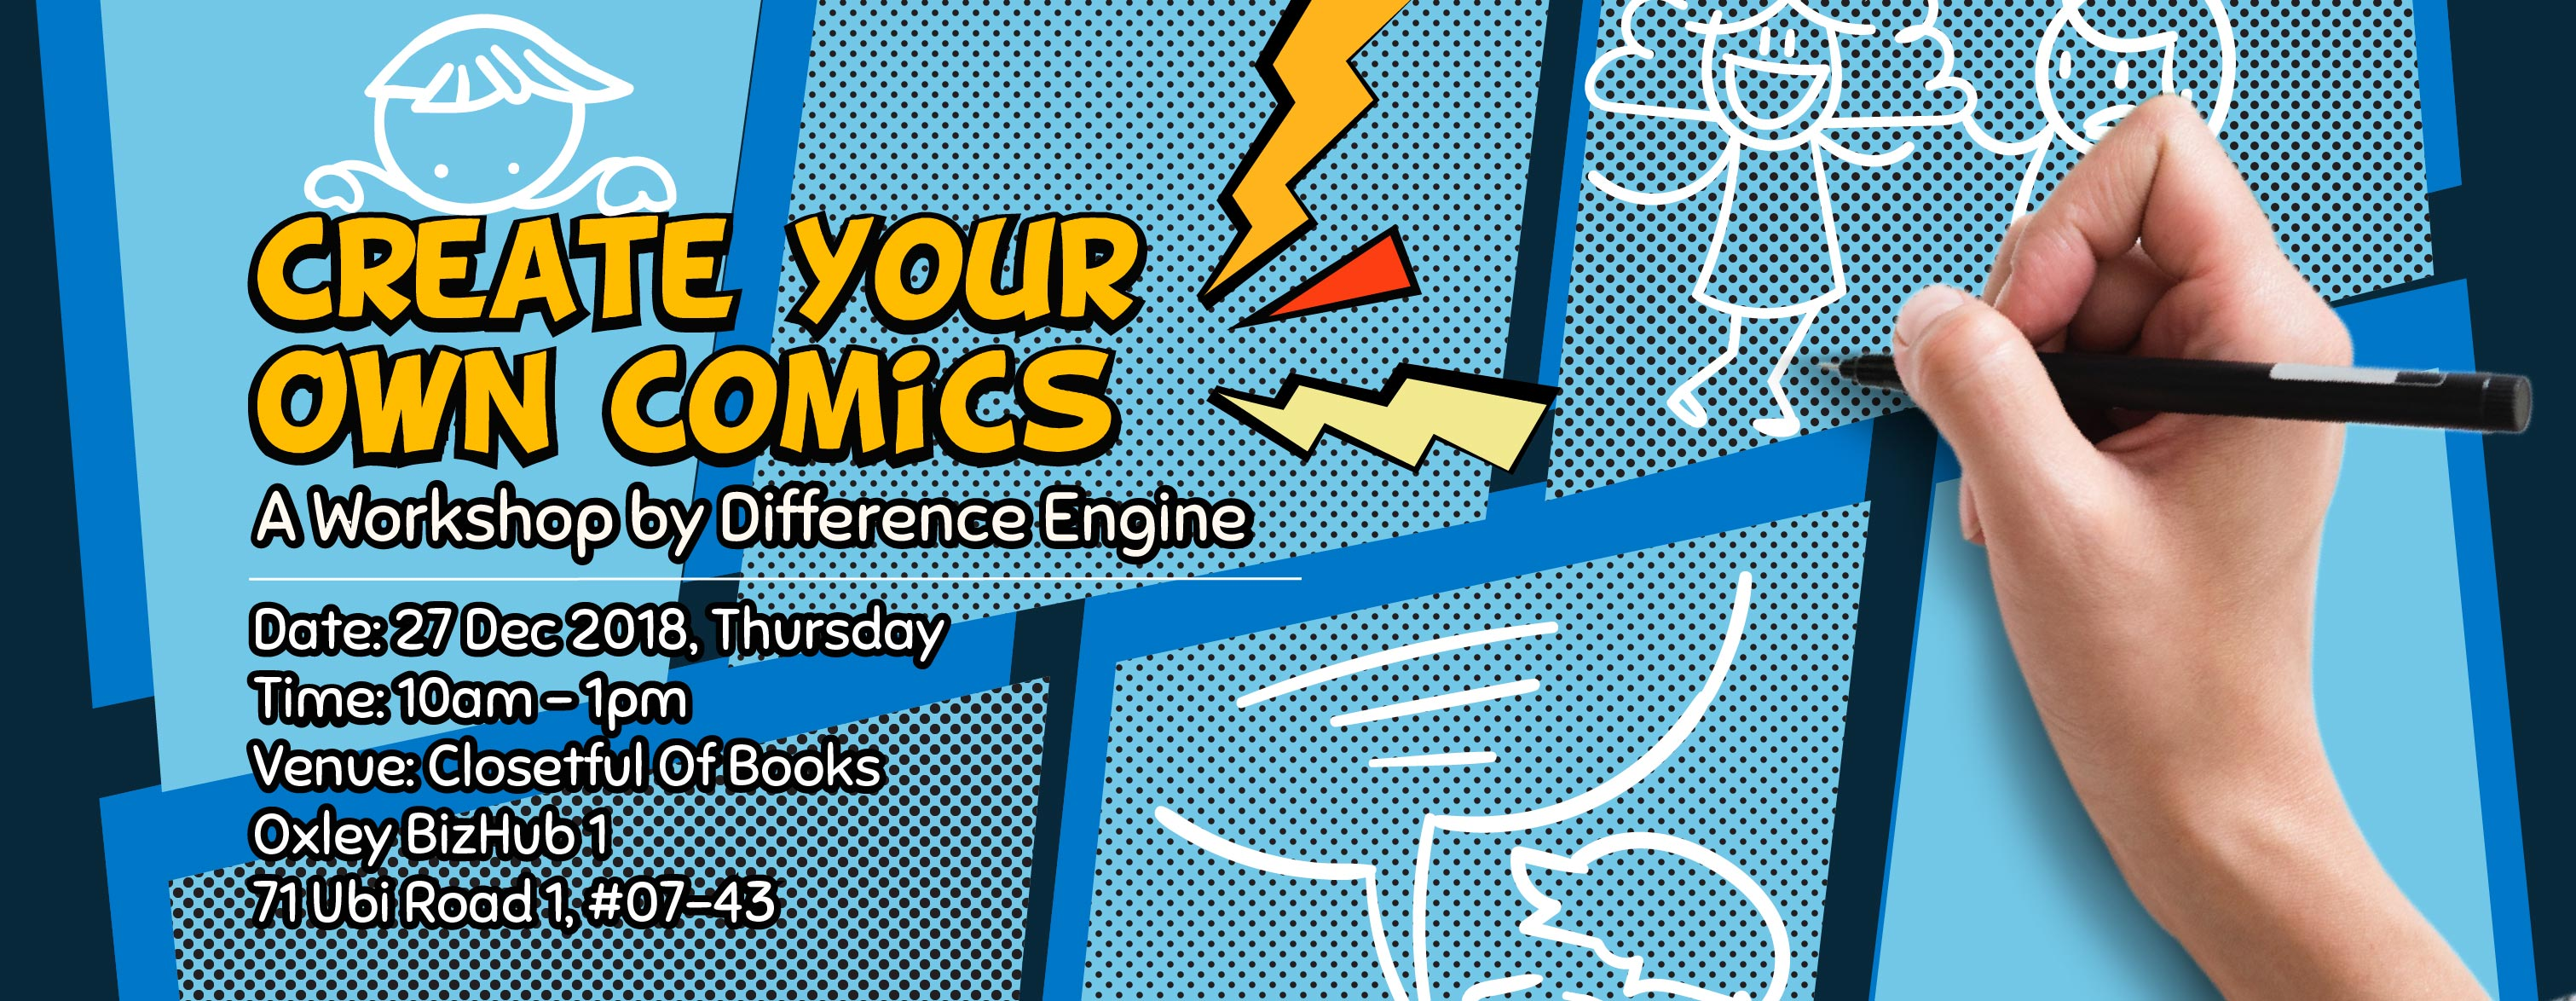 create your own comics workshop